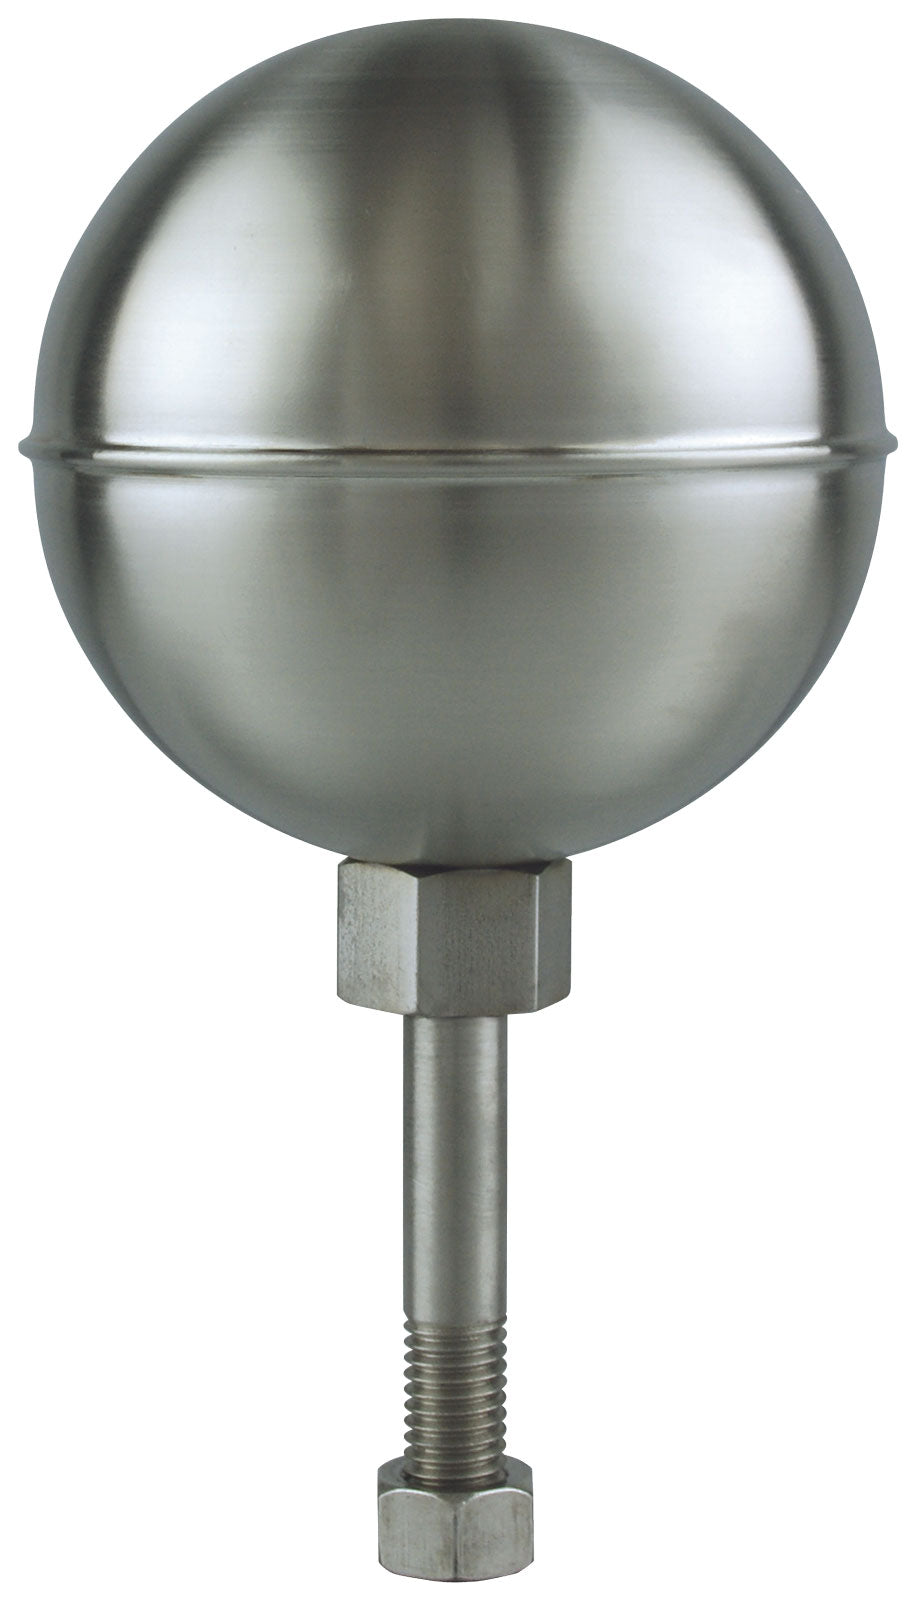 Stainless Steel Ball Ornament - Satin Finish